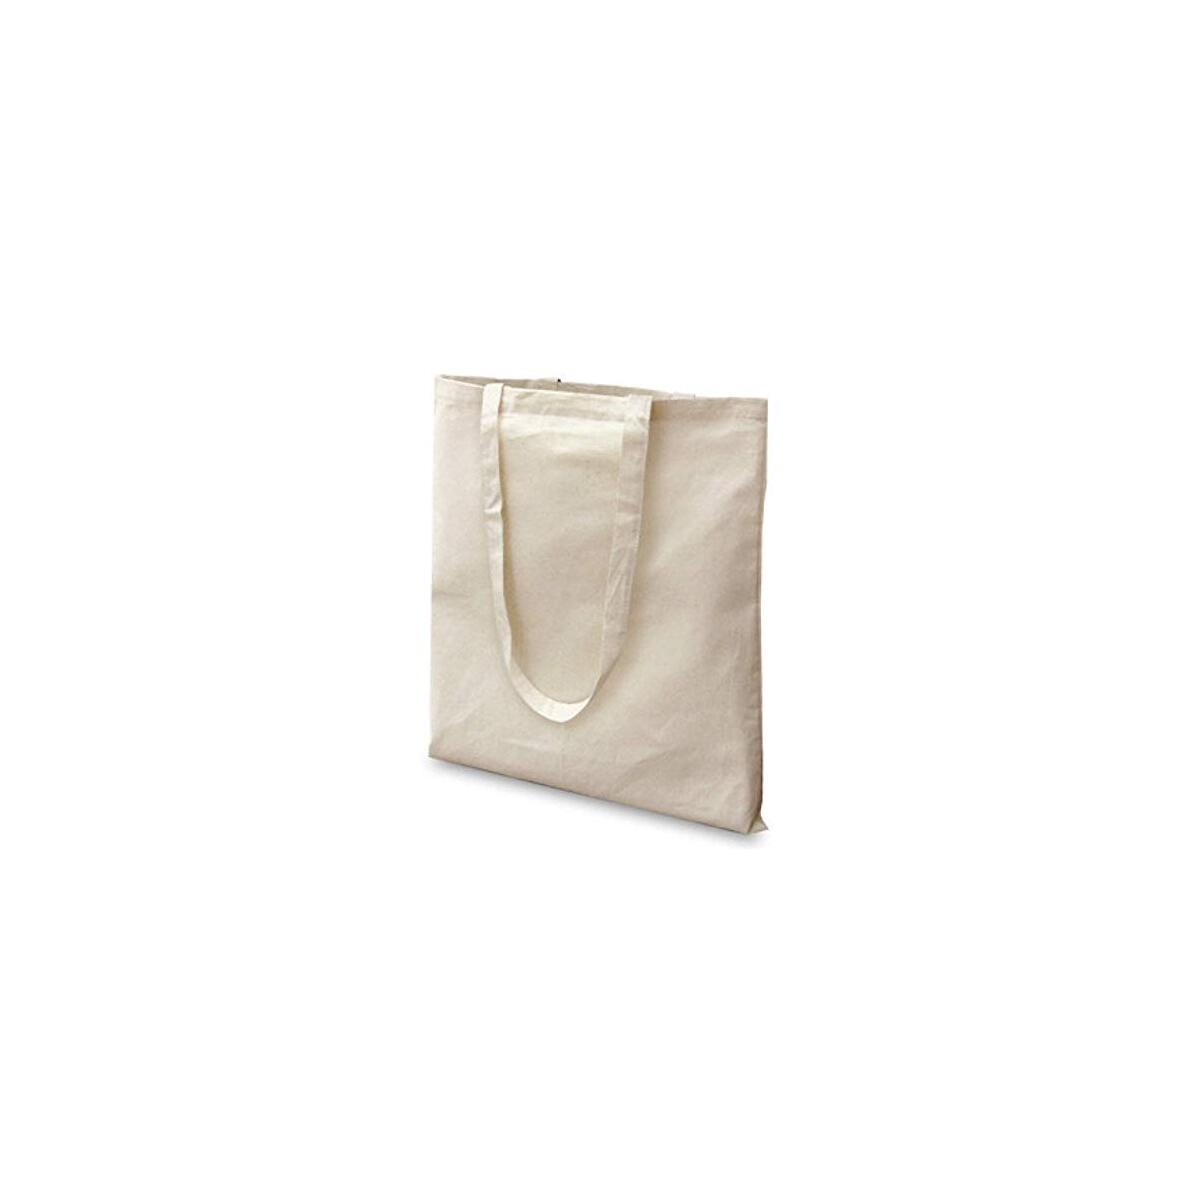 12 Pack Premium Natural Cotton Bags with Long Handle; Reusable Tote Bags; Ideal for Shopping; Can be Screen Printed, Designed and Customized; Machine Washable (Pack of 12- Size: 38 cm x 42 cm)